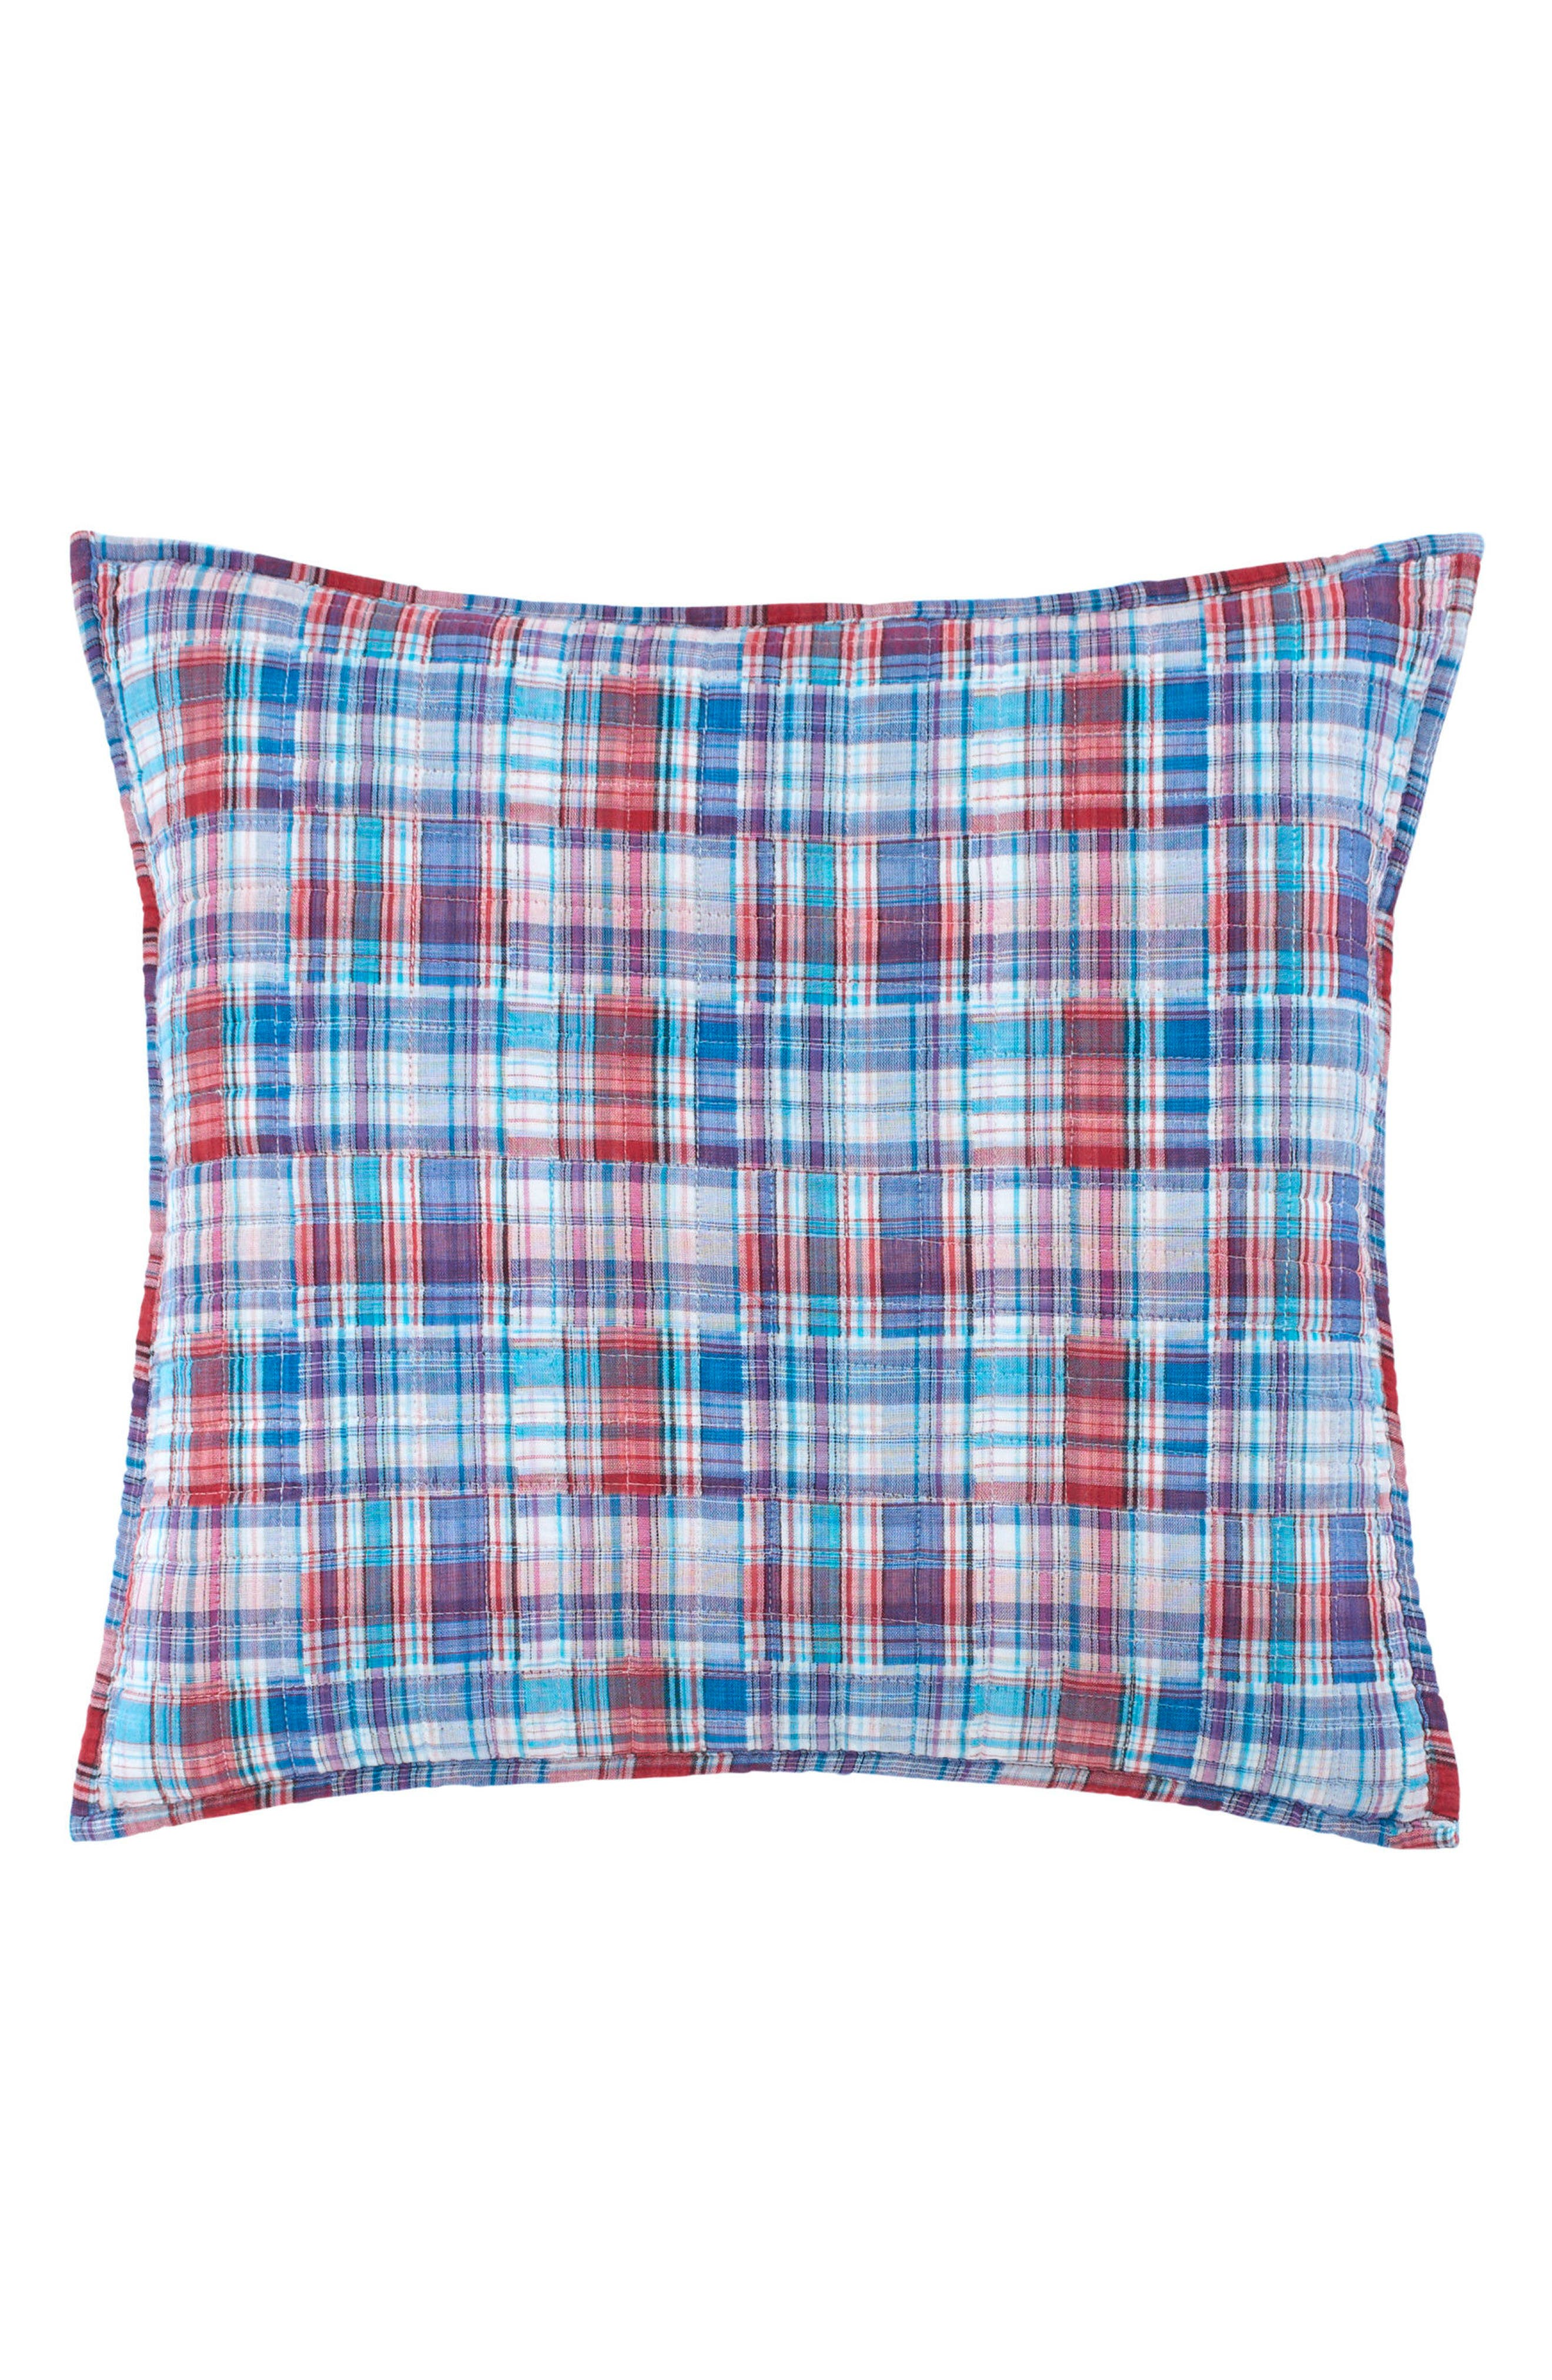 Alternate Image 1 Selected - Southern Tide Legacy Accent Pillow